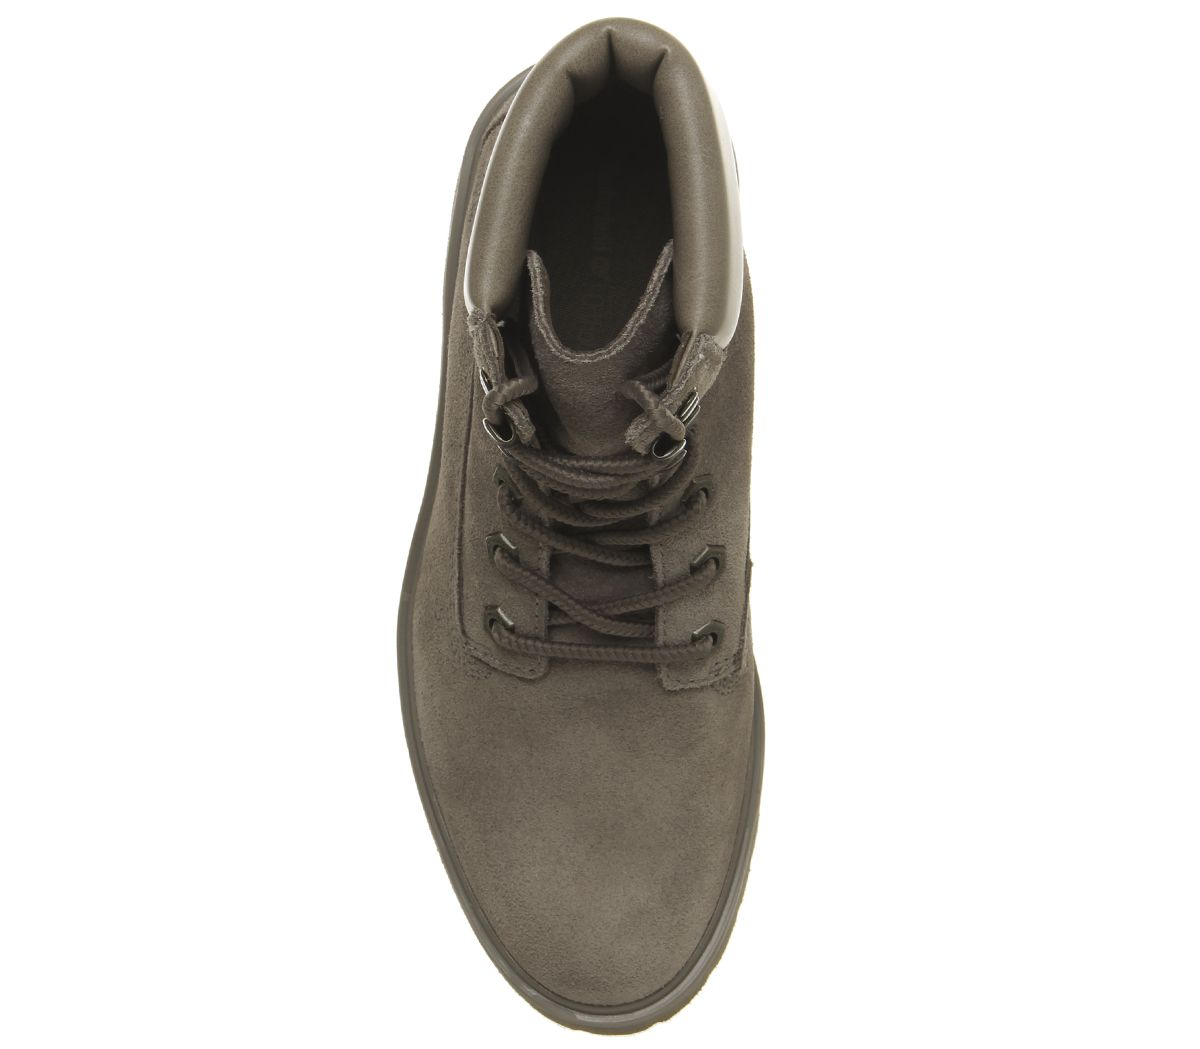 7d42abfaf4f Womens-Timberland-Carnaby-Cool-Boots-Taupe-Grey-Boots thumbnail